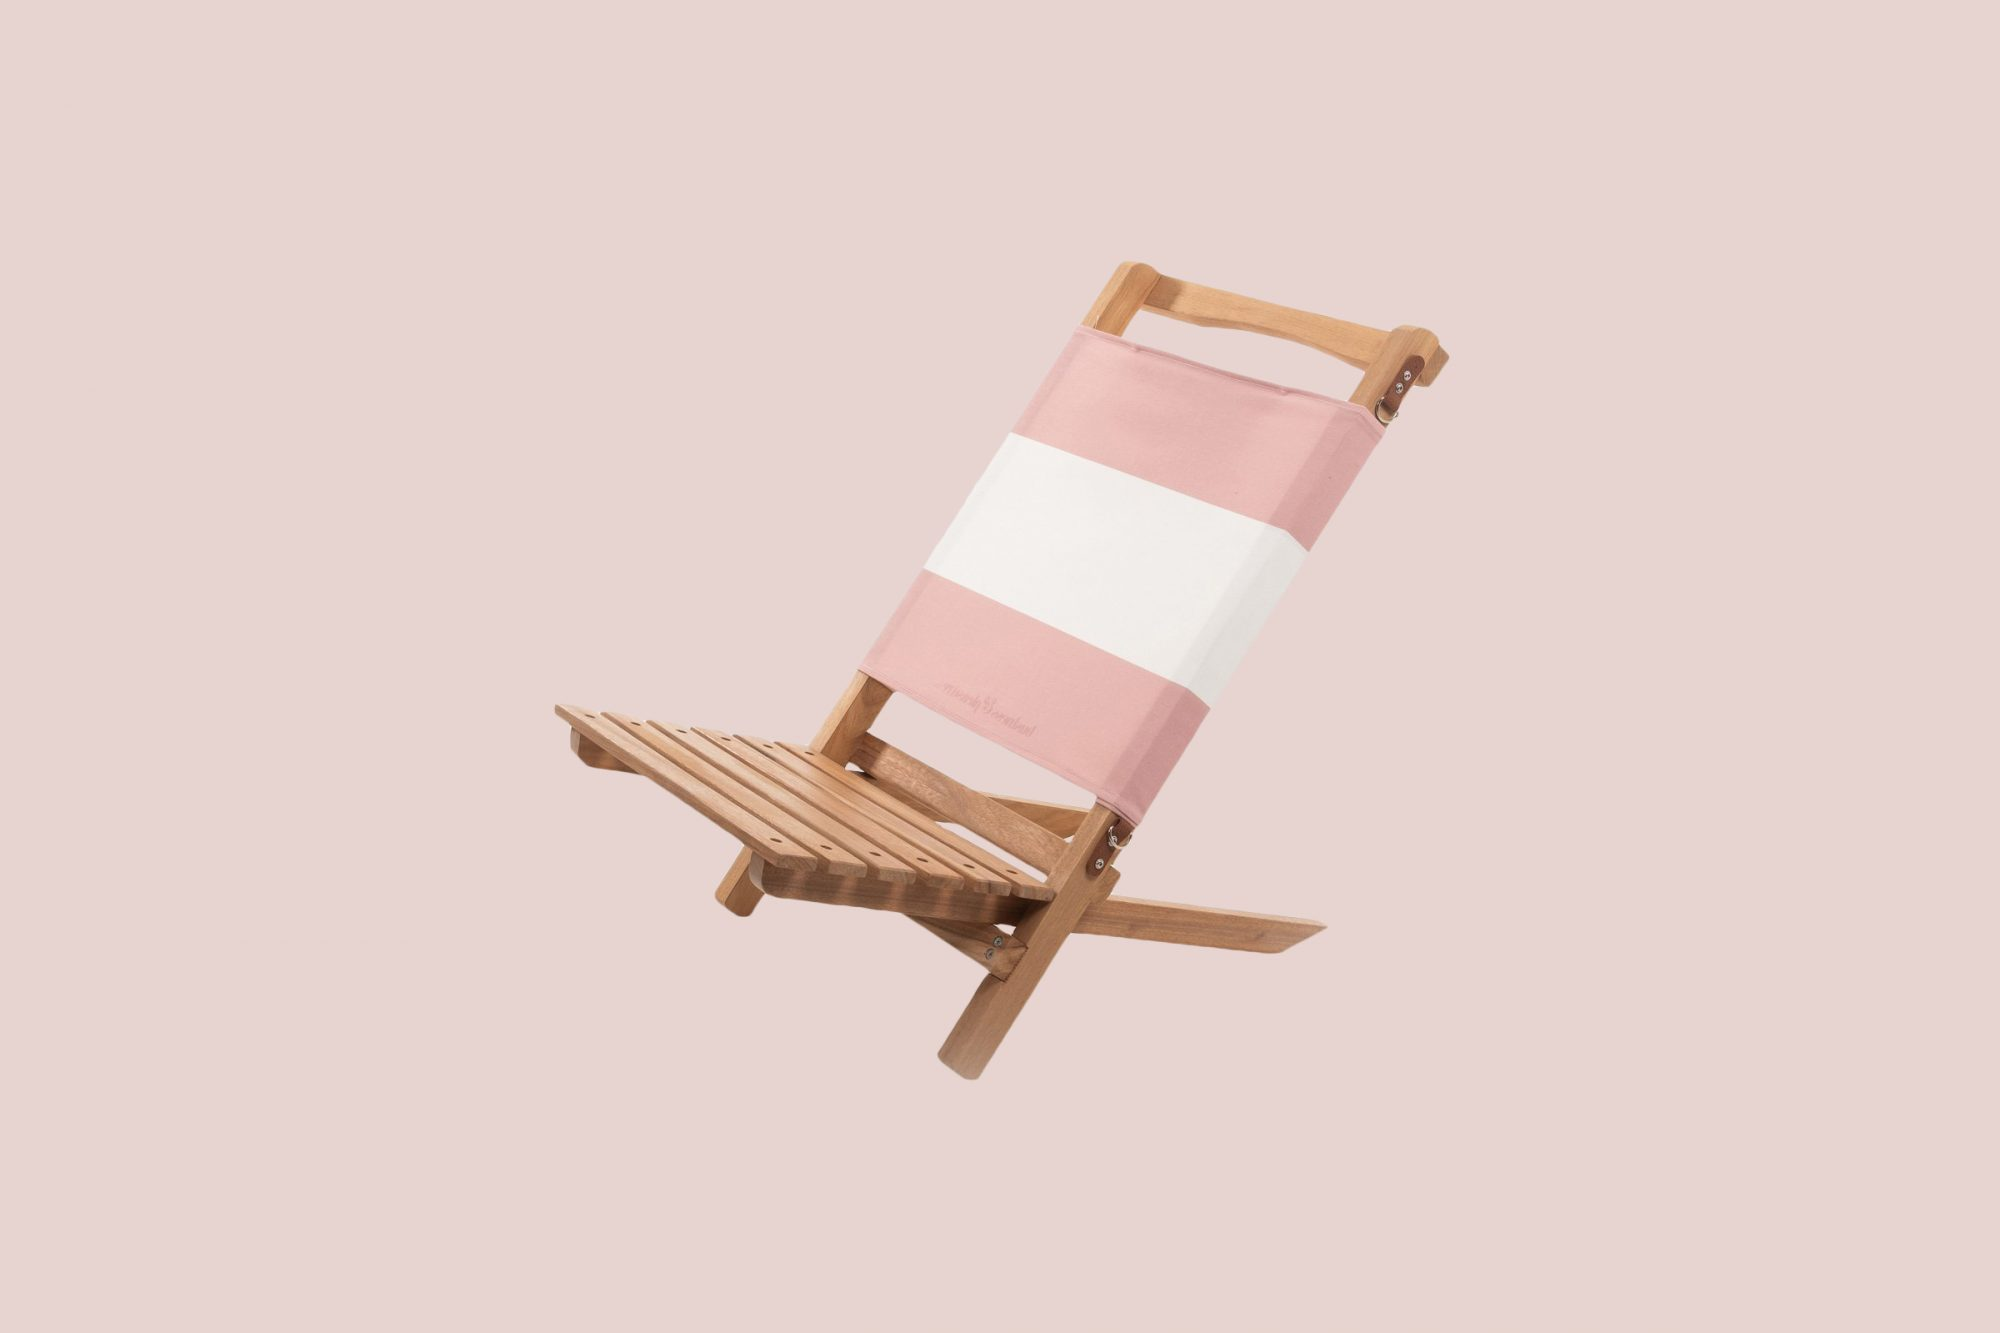 The 2-Piece Chair in Pink Stripe